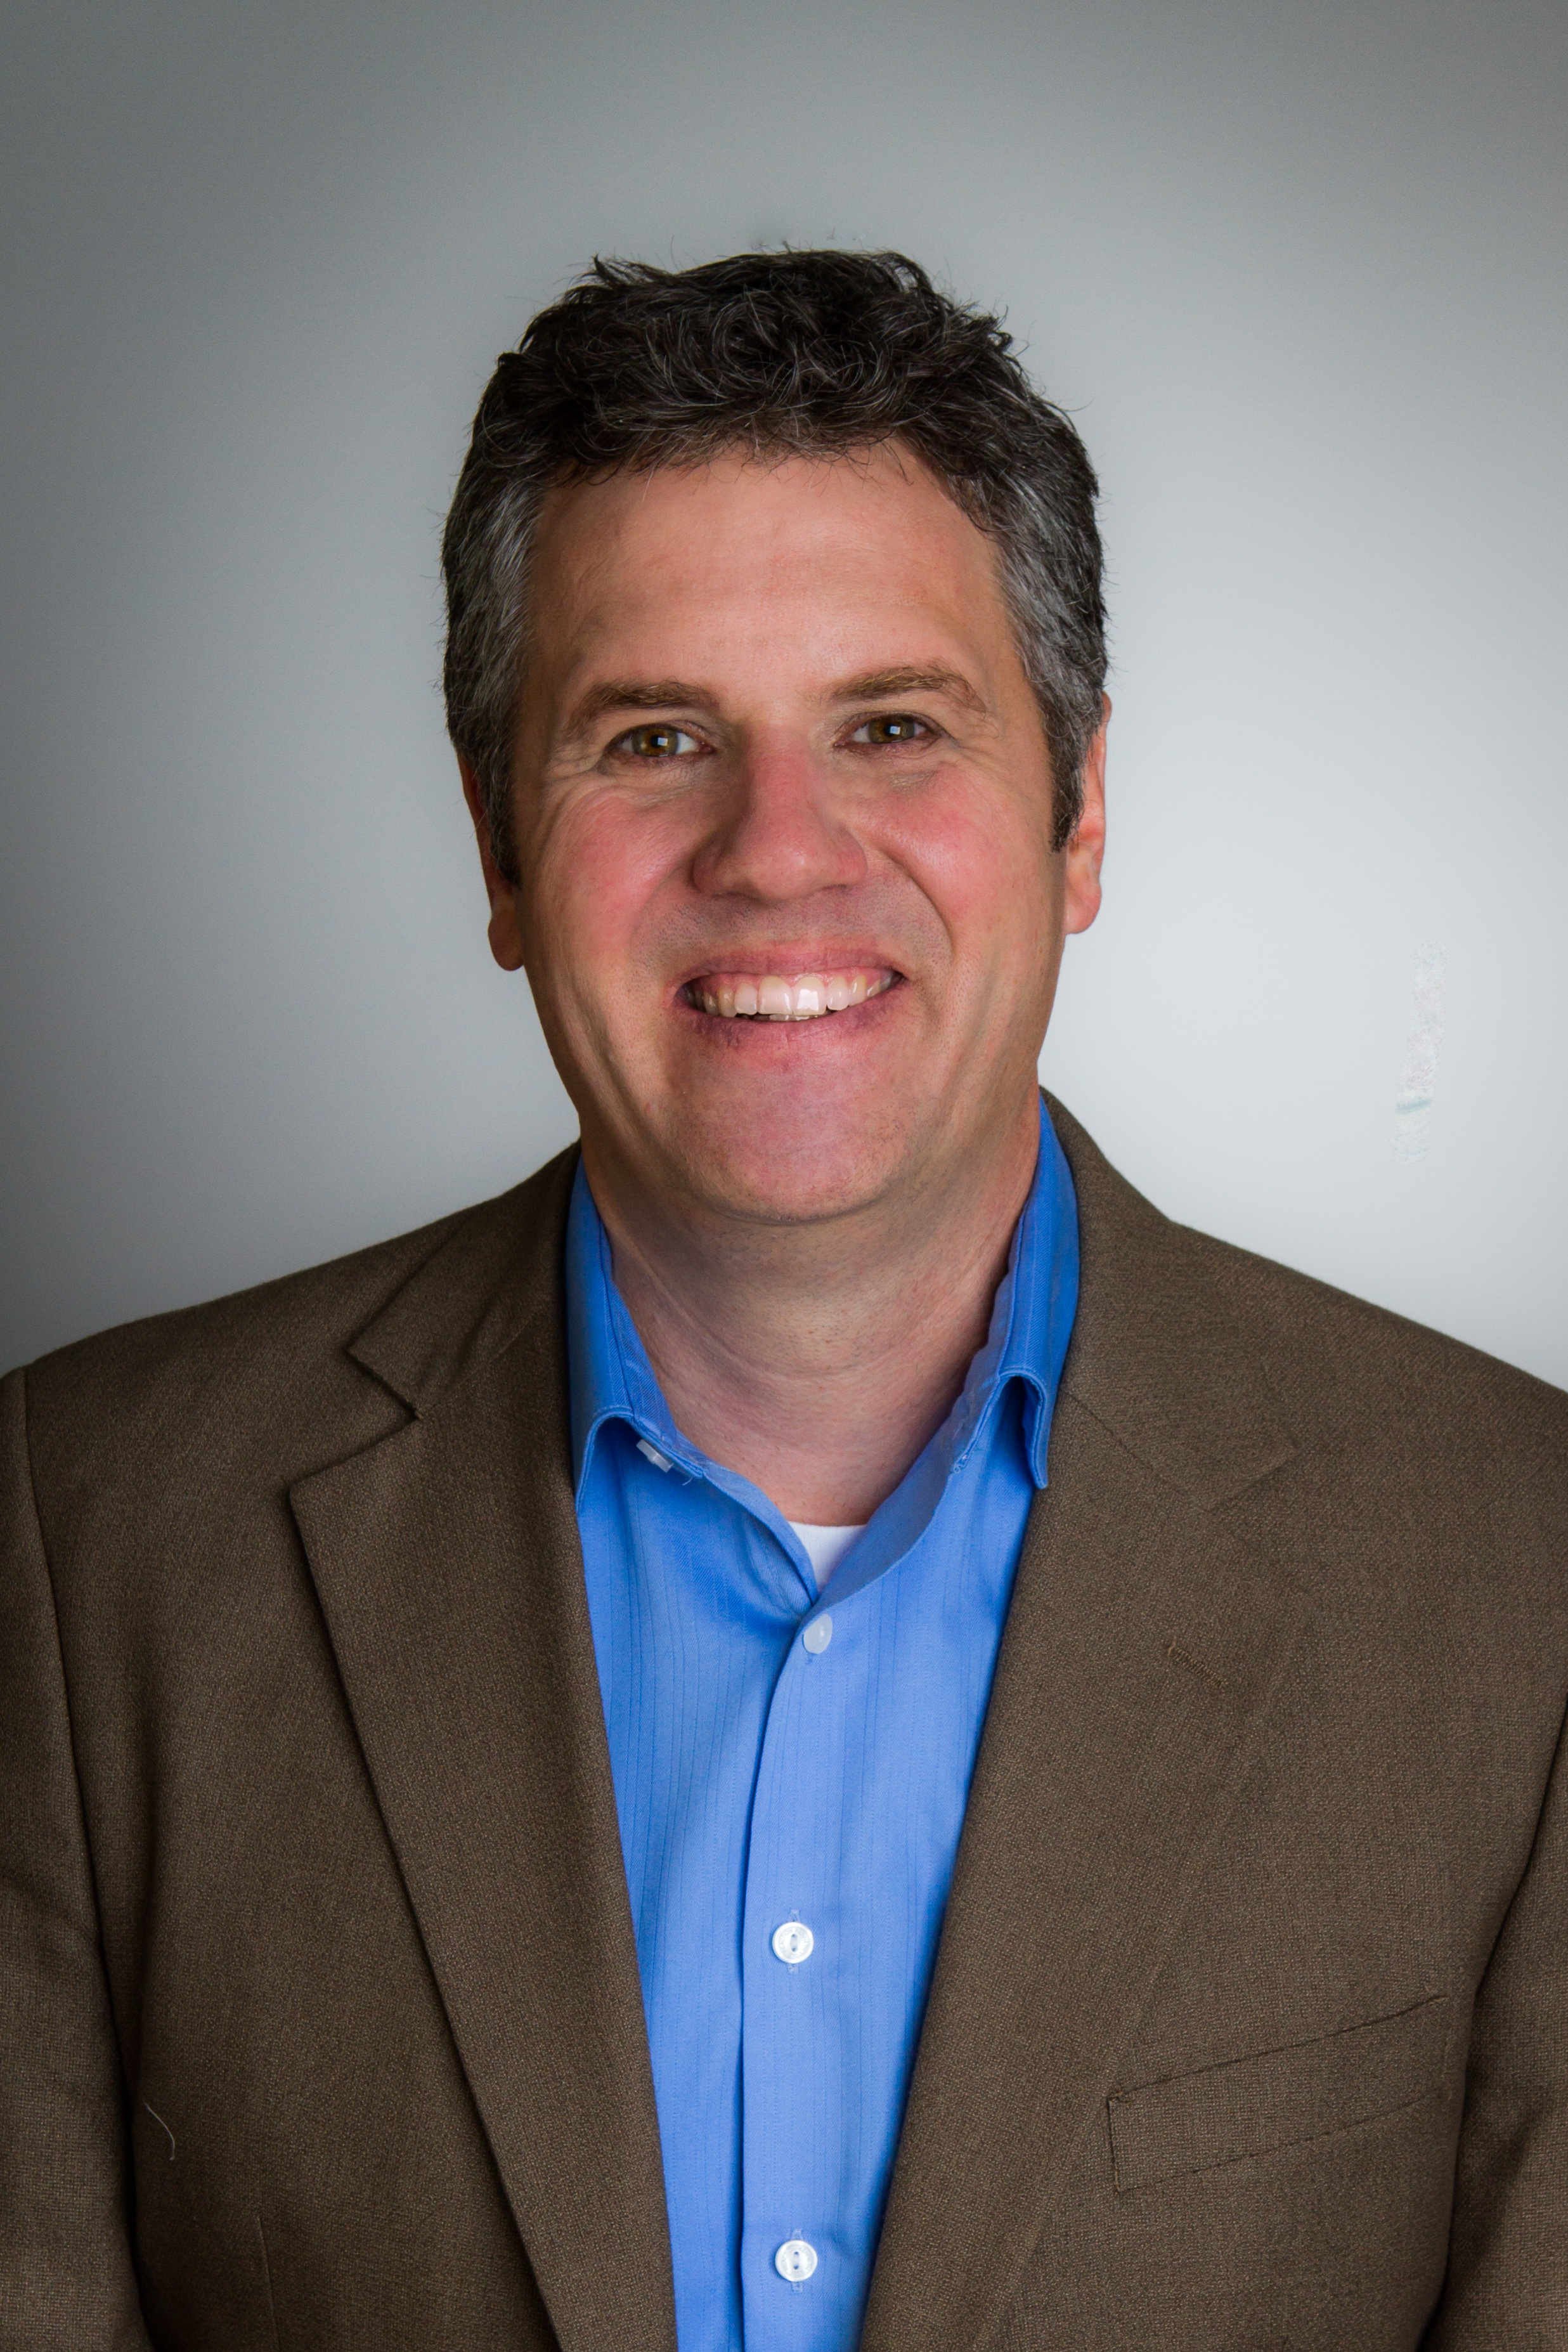 Photo of Mark Krause, Psychology Faculty